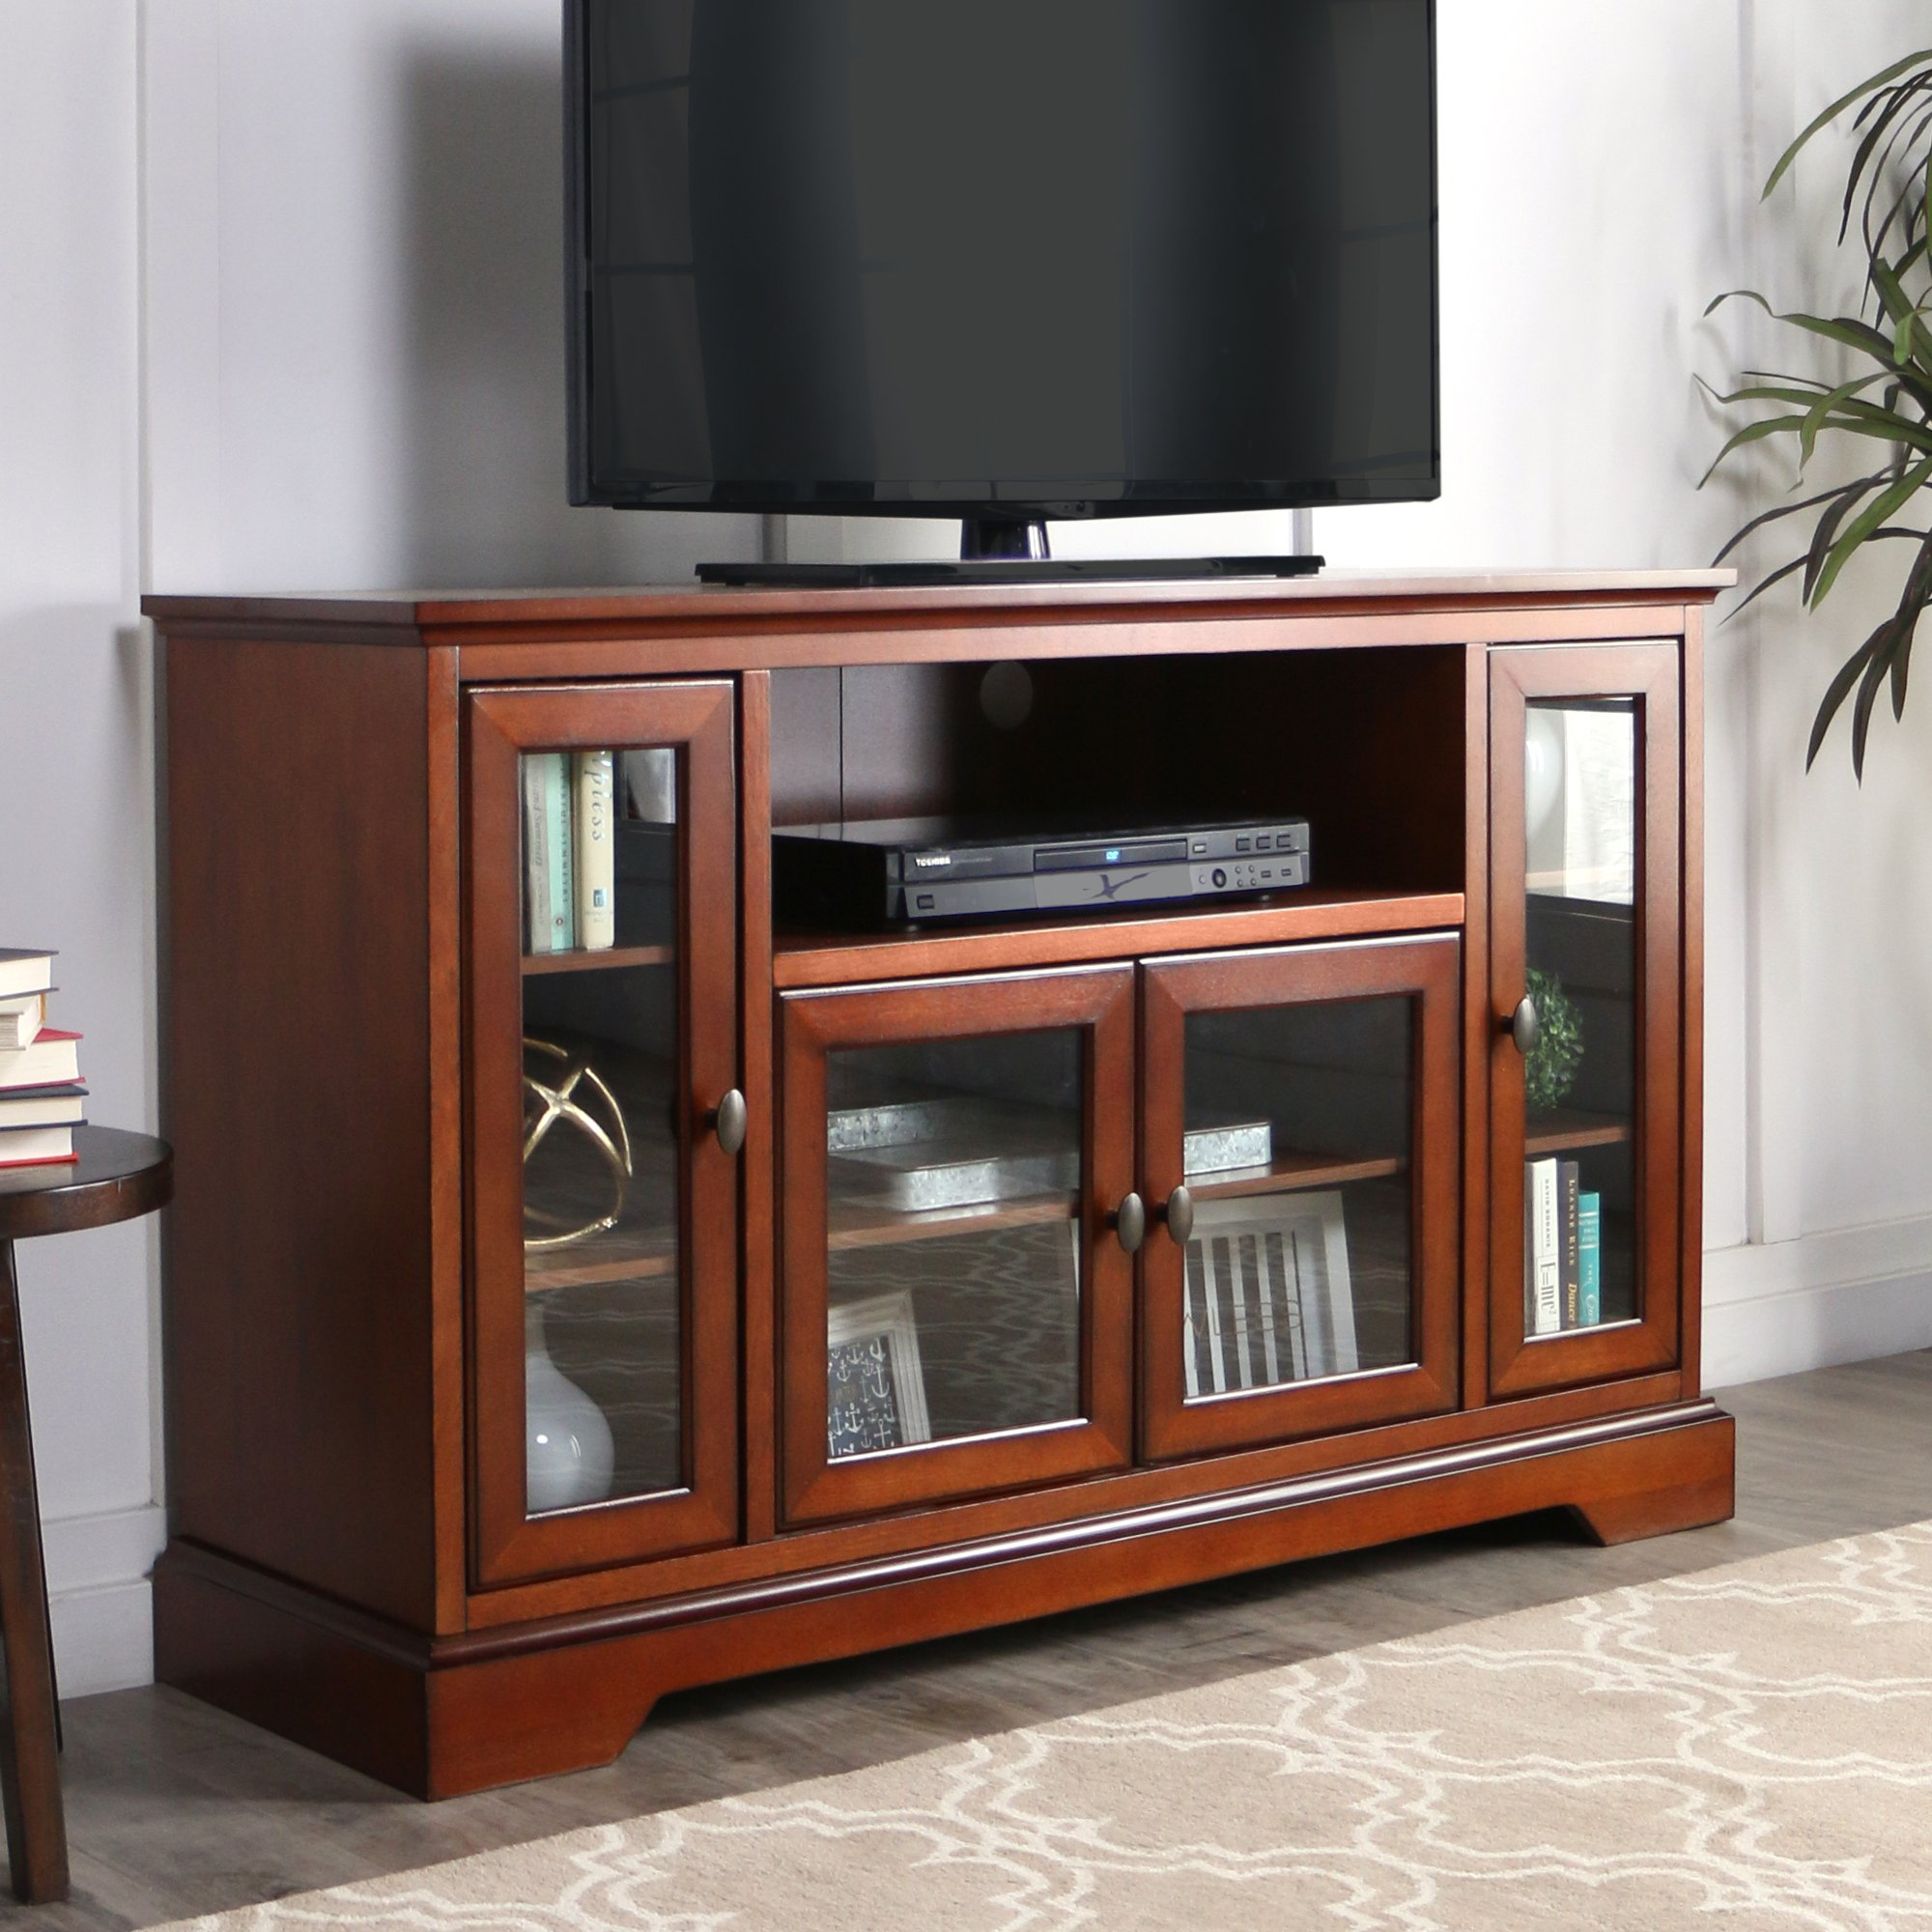 WE Furniture 52'' Wood Highboy Style Tall TV Stand - Rustic Brown by WE Furniture